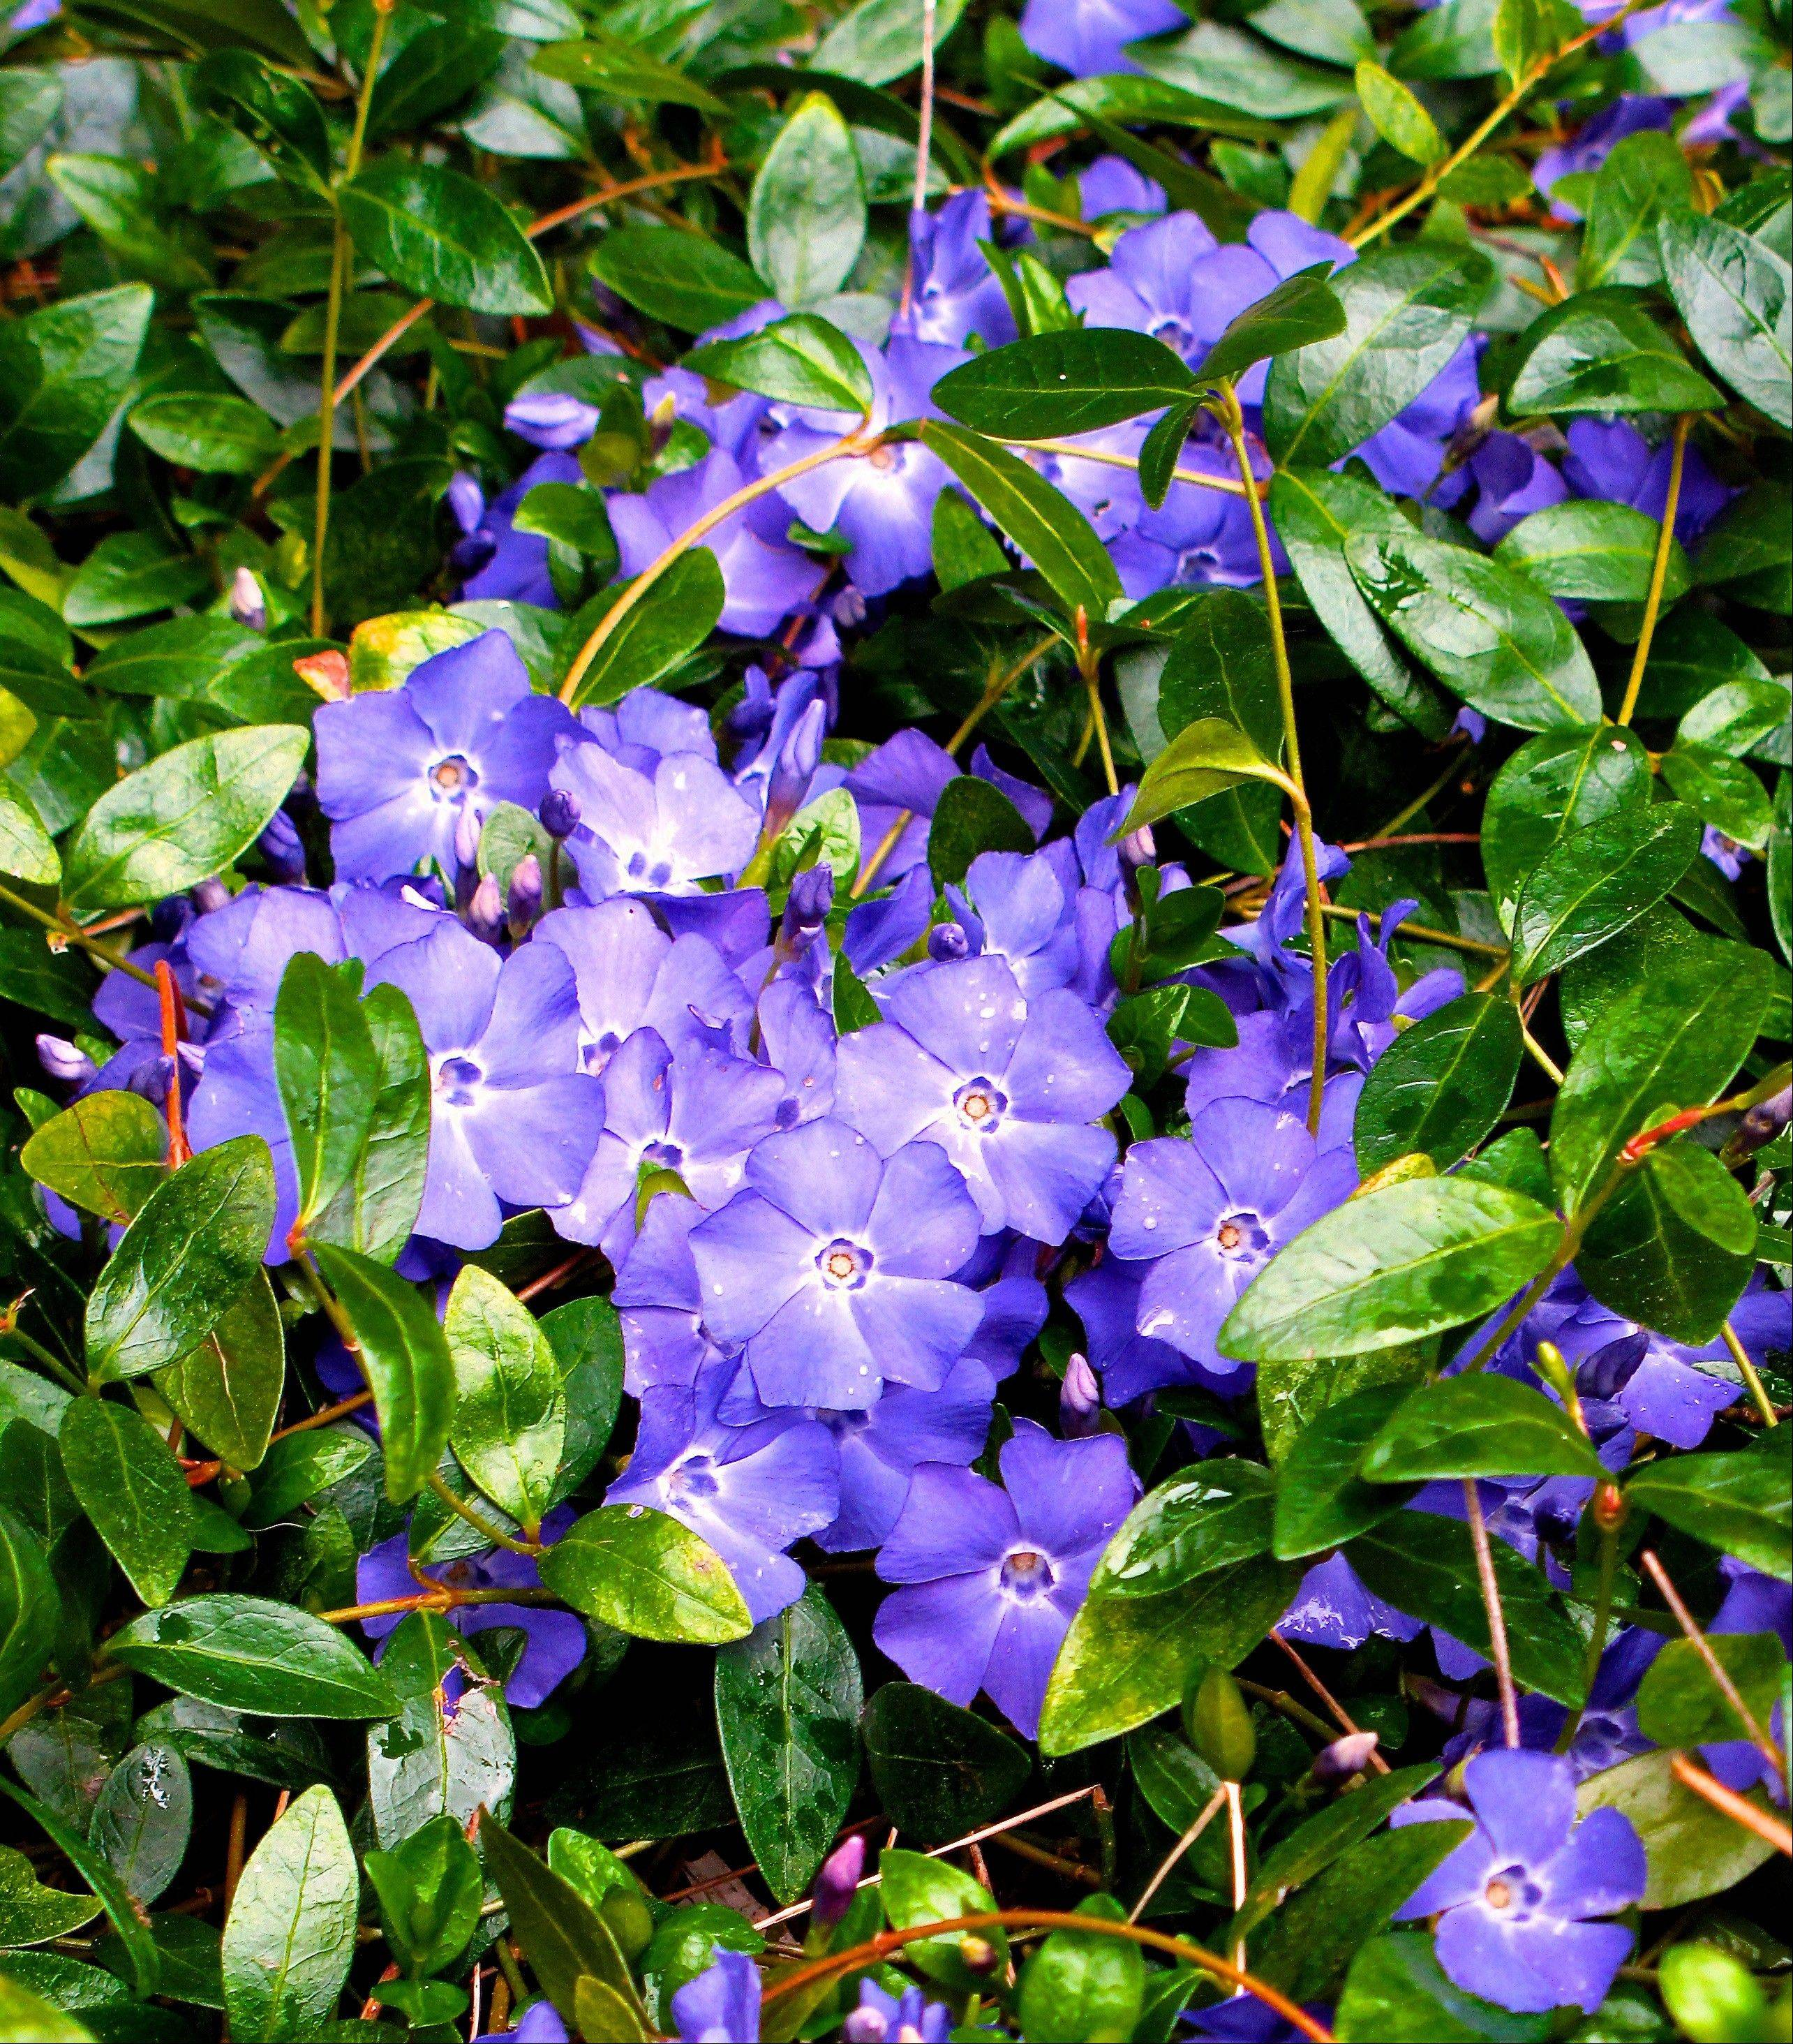 Vinca minor (periwinkle or creeping myrtle), a commonly used groundcover, prefers rich, moist soil but can tolerate poor, dry conditions and sunny exposures.